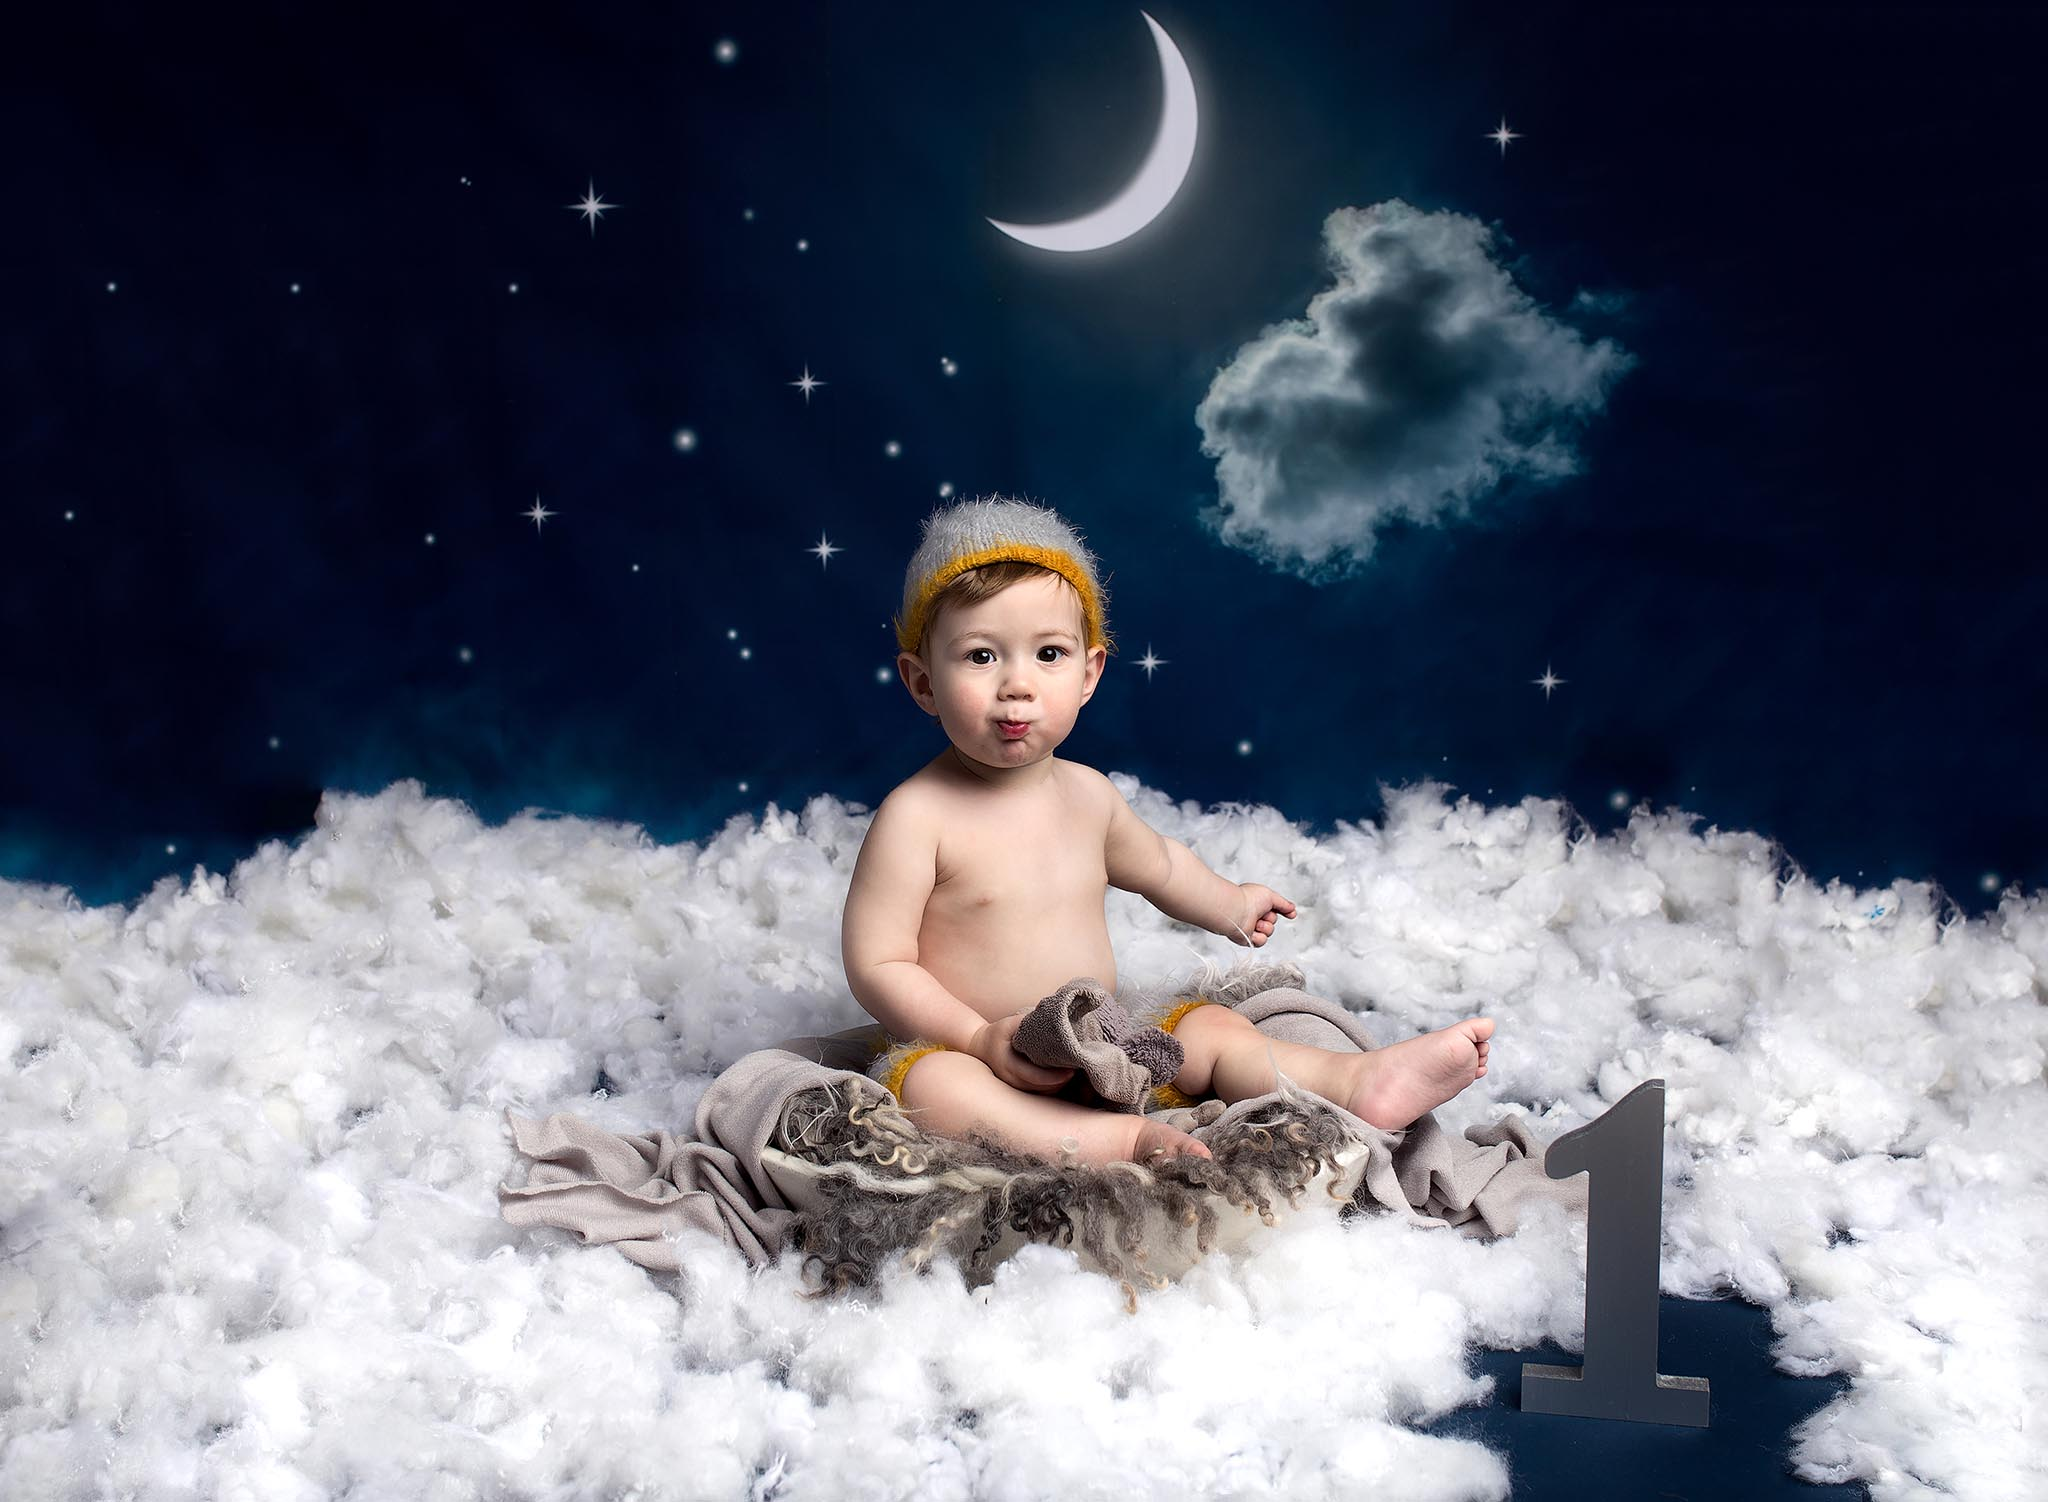 Baby portrait photography session